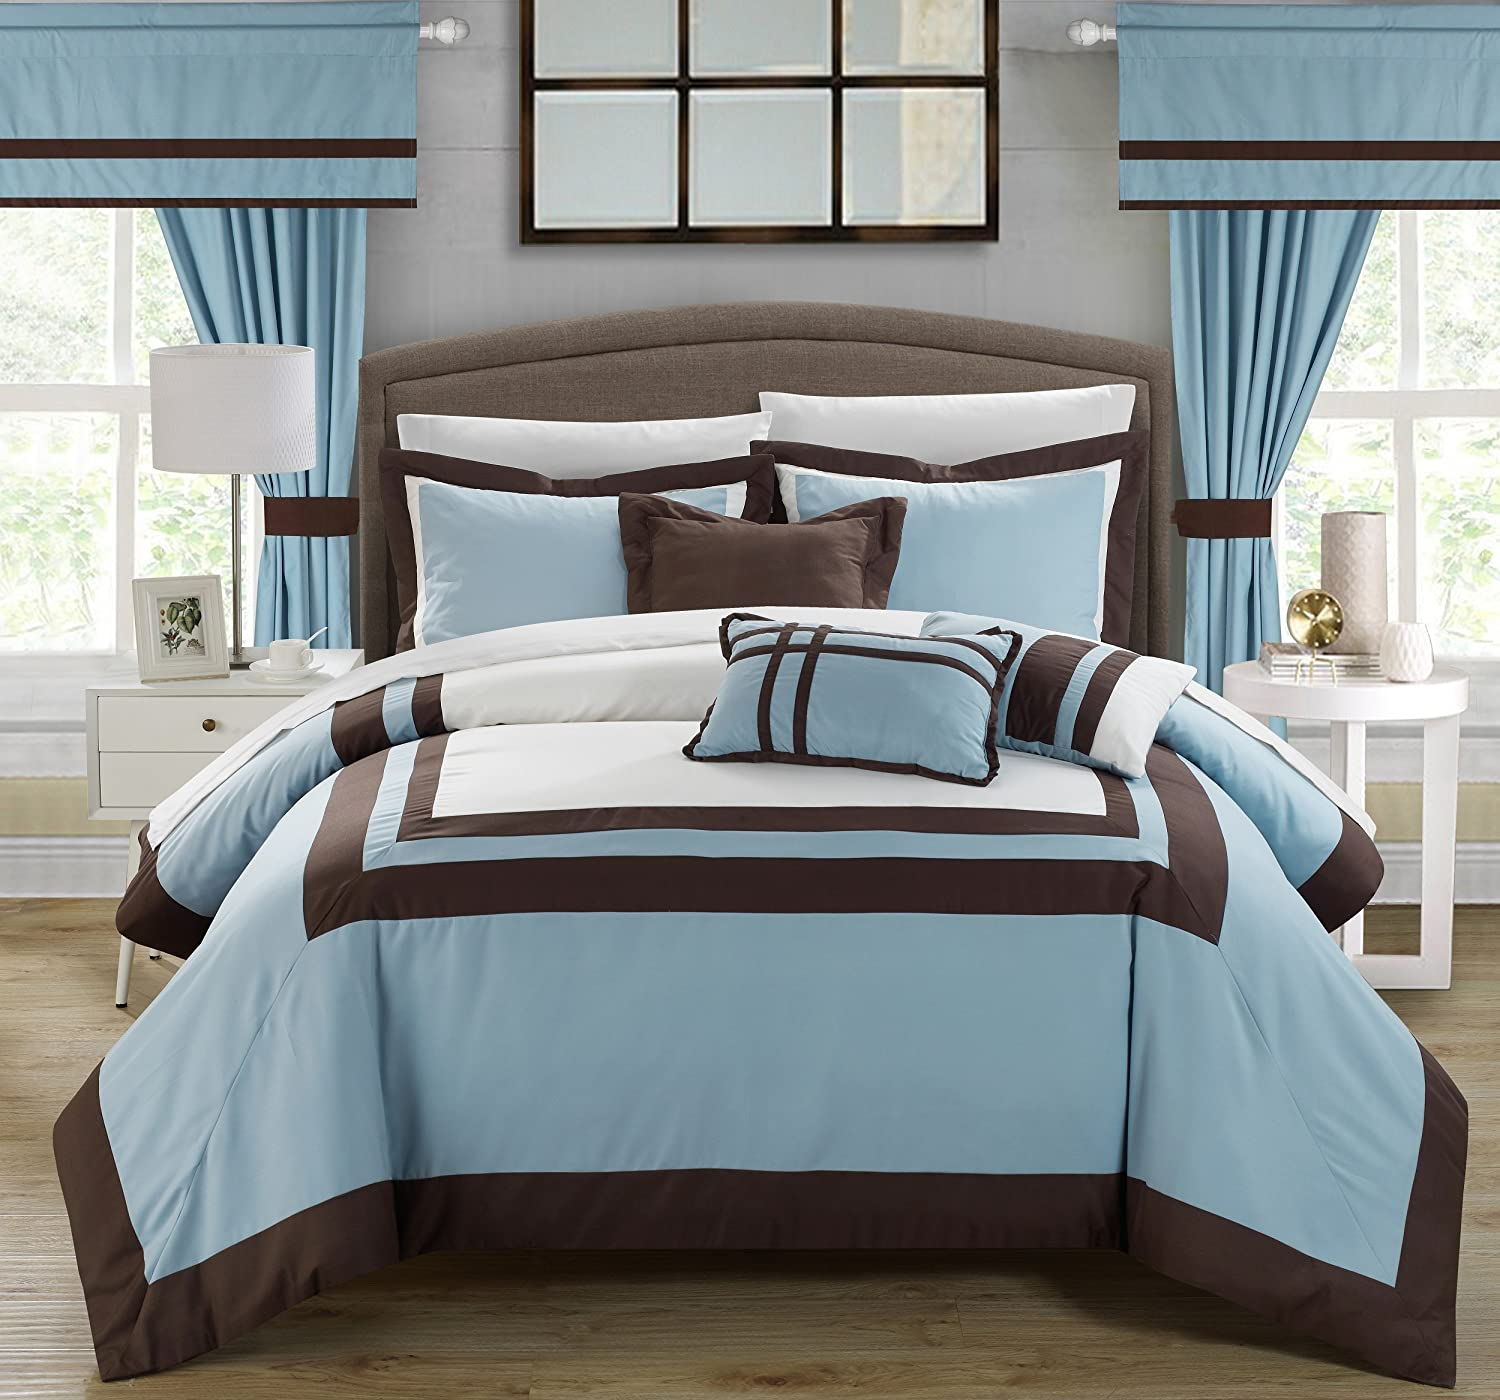 Amazon.com: Chic Home Ritz 20 Piece Comforter Set Color Block Bed In A Bag  With Sheets Curtains, Queen Blue: Home U0026 Kitchen